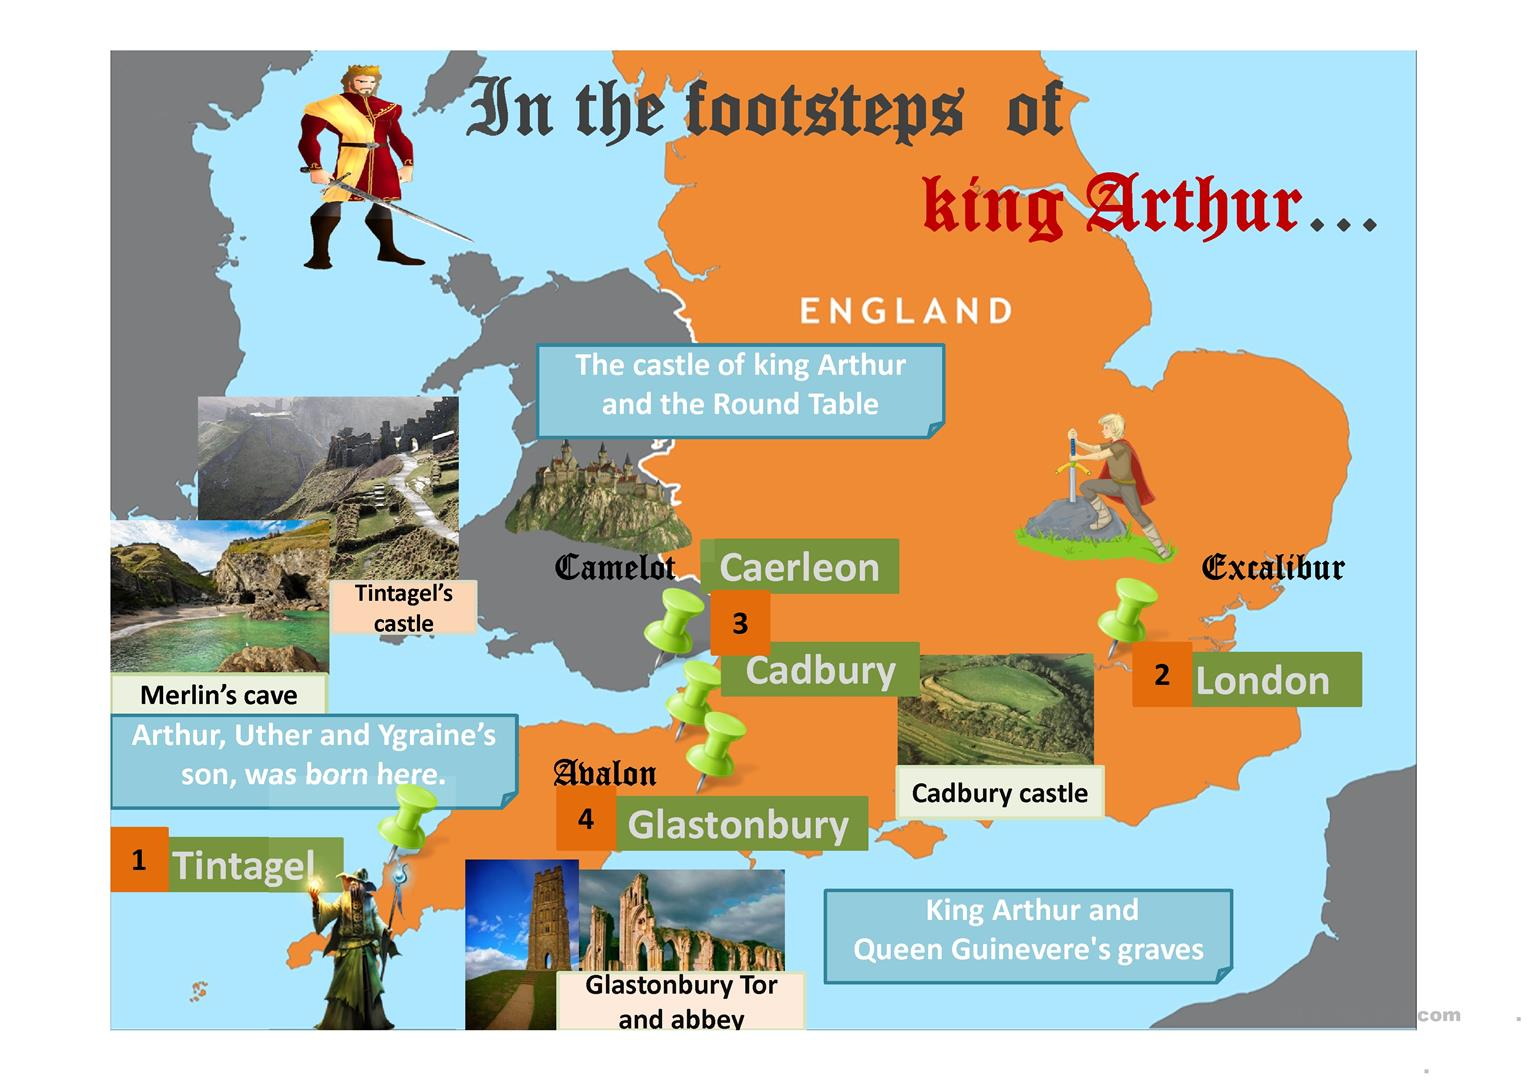 Map Of England King Arthur.Map In The Footsteps Of King Arthur English Esl Powerpoints